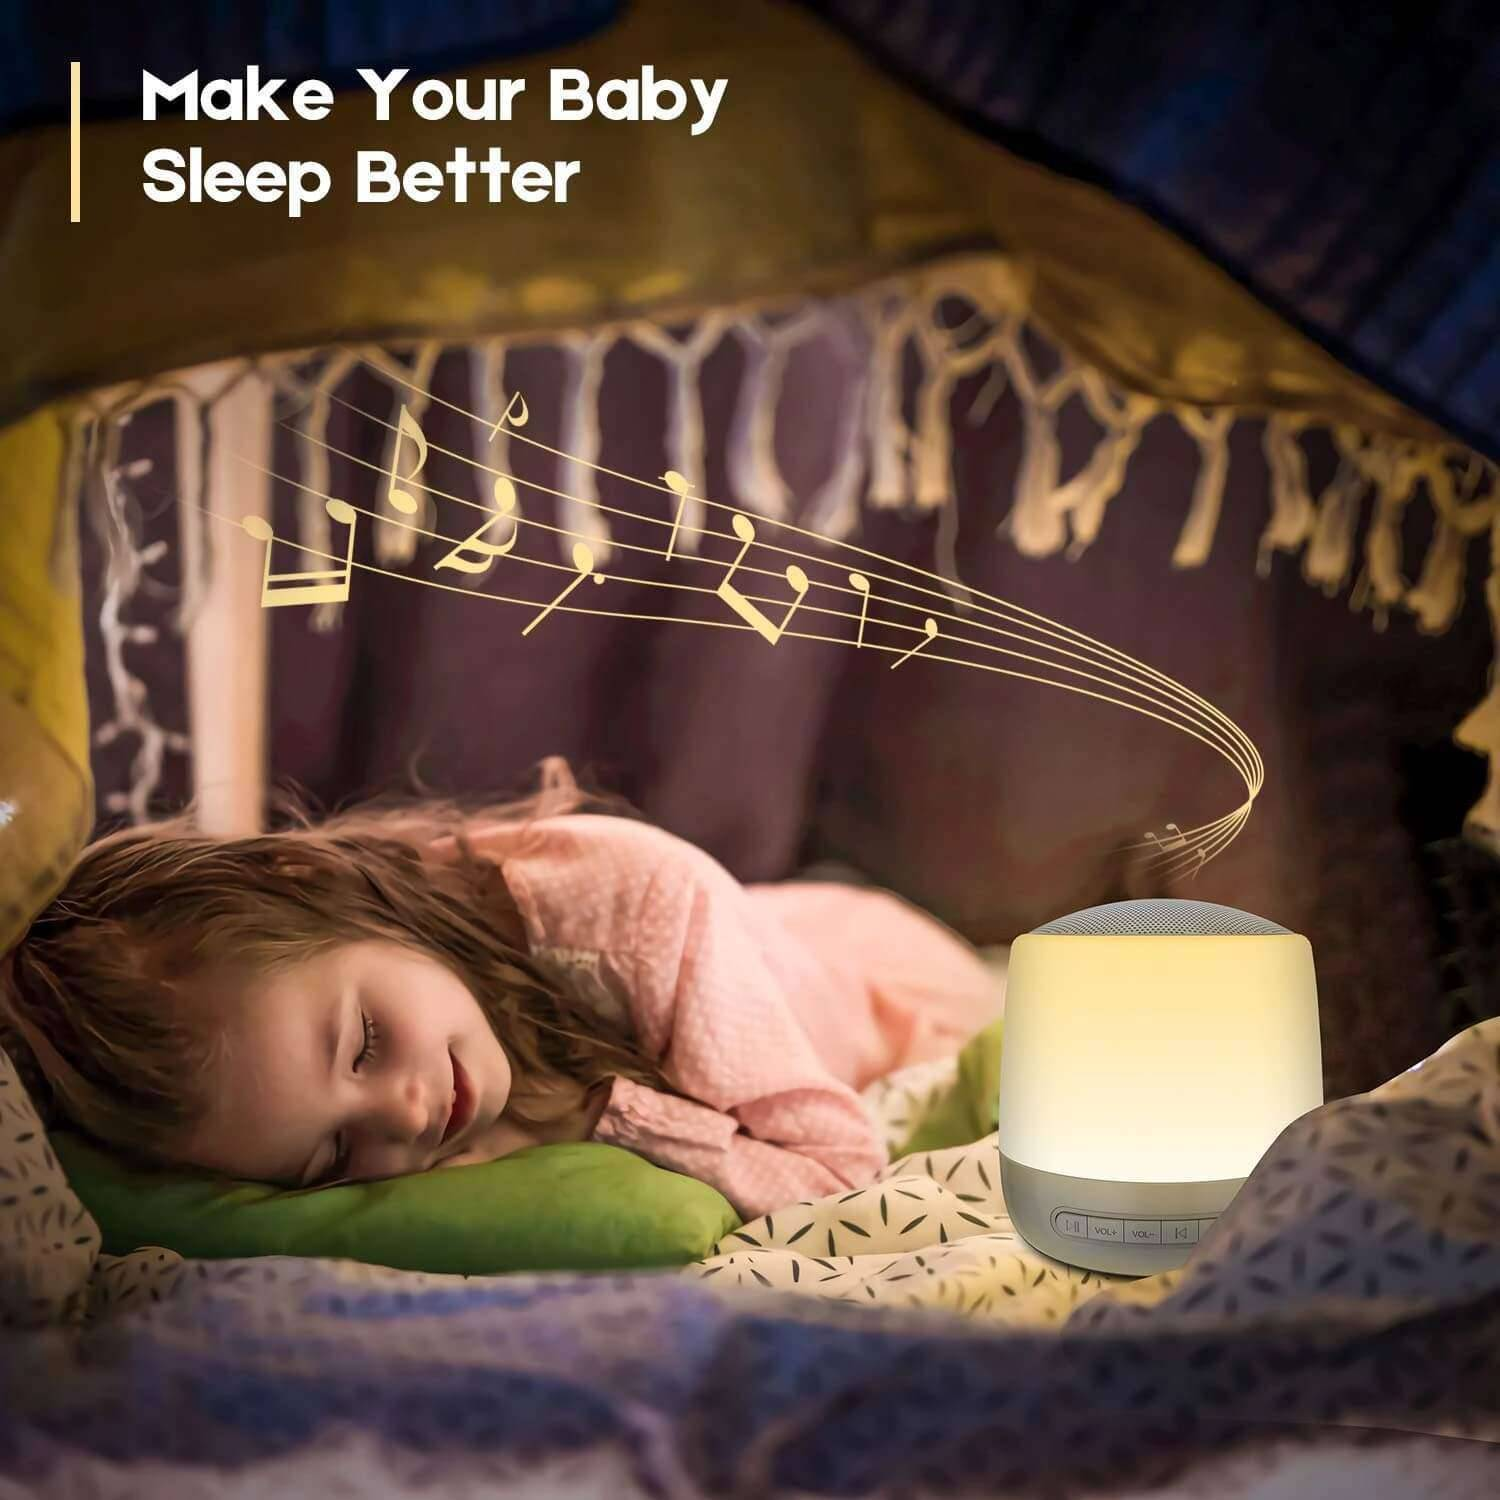 Elecstars Store Baby Rest Sound Machine With Lights White Noise Machine Touch Control Mood for Sleeping